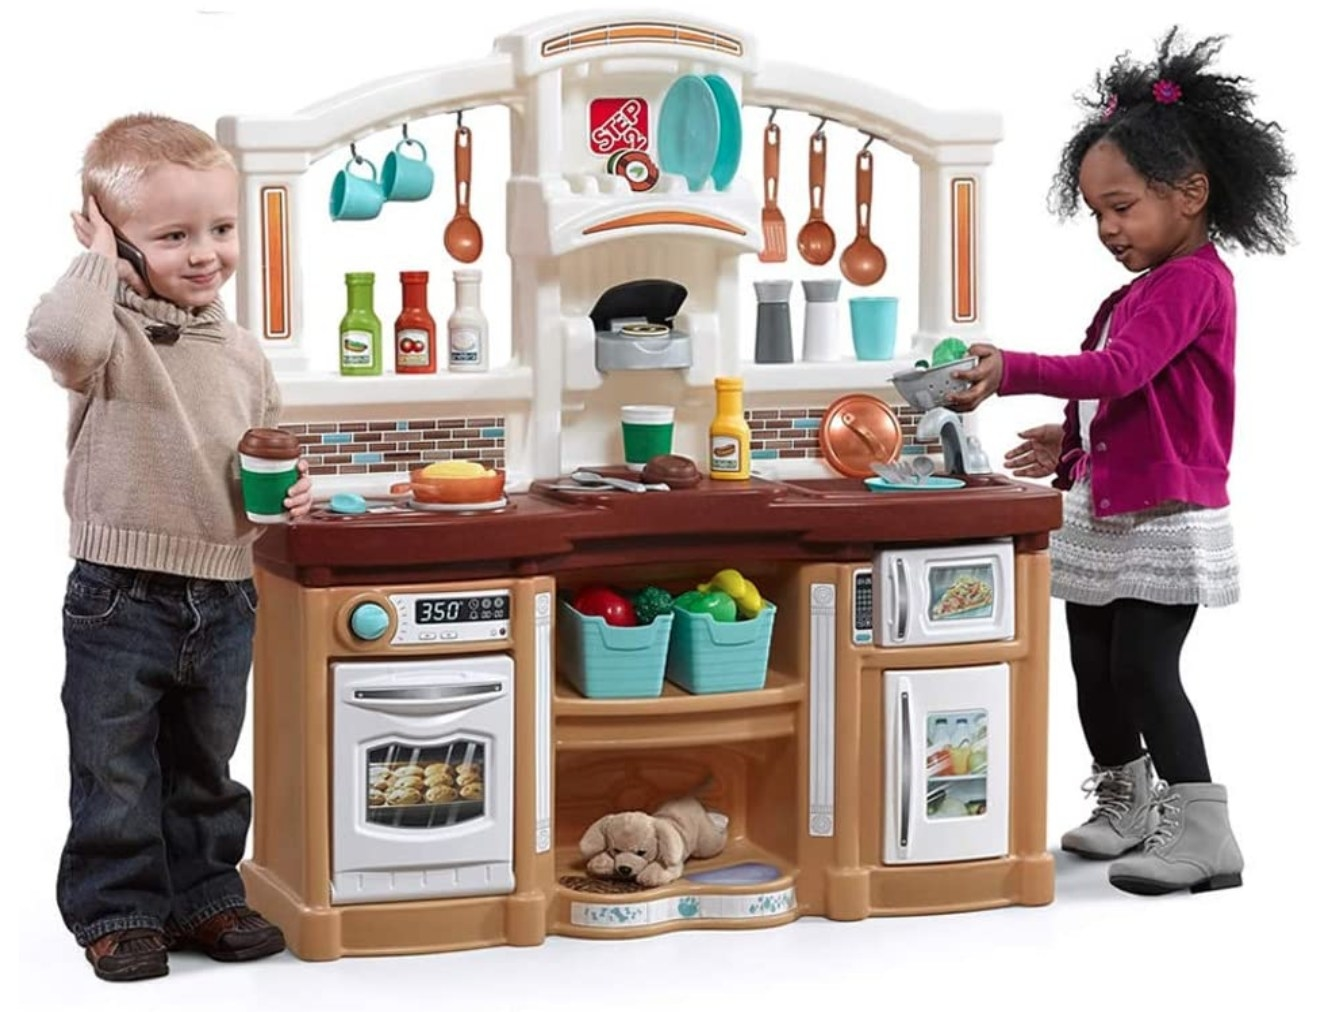 Two young children pretend to cook at a toy kitchen.